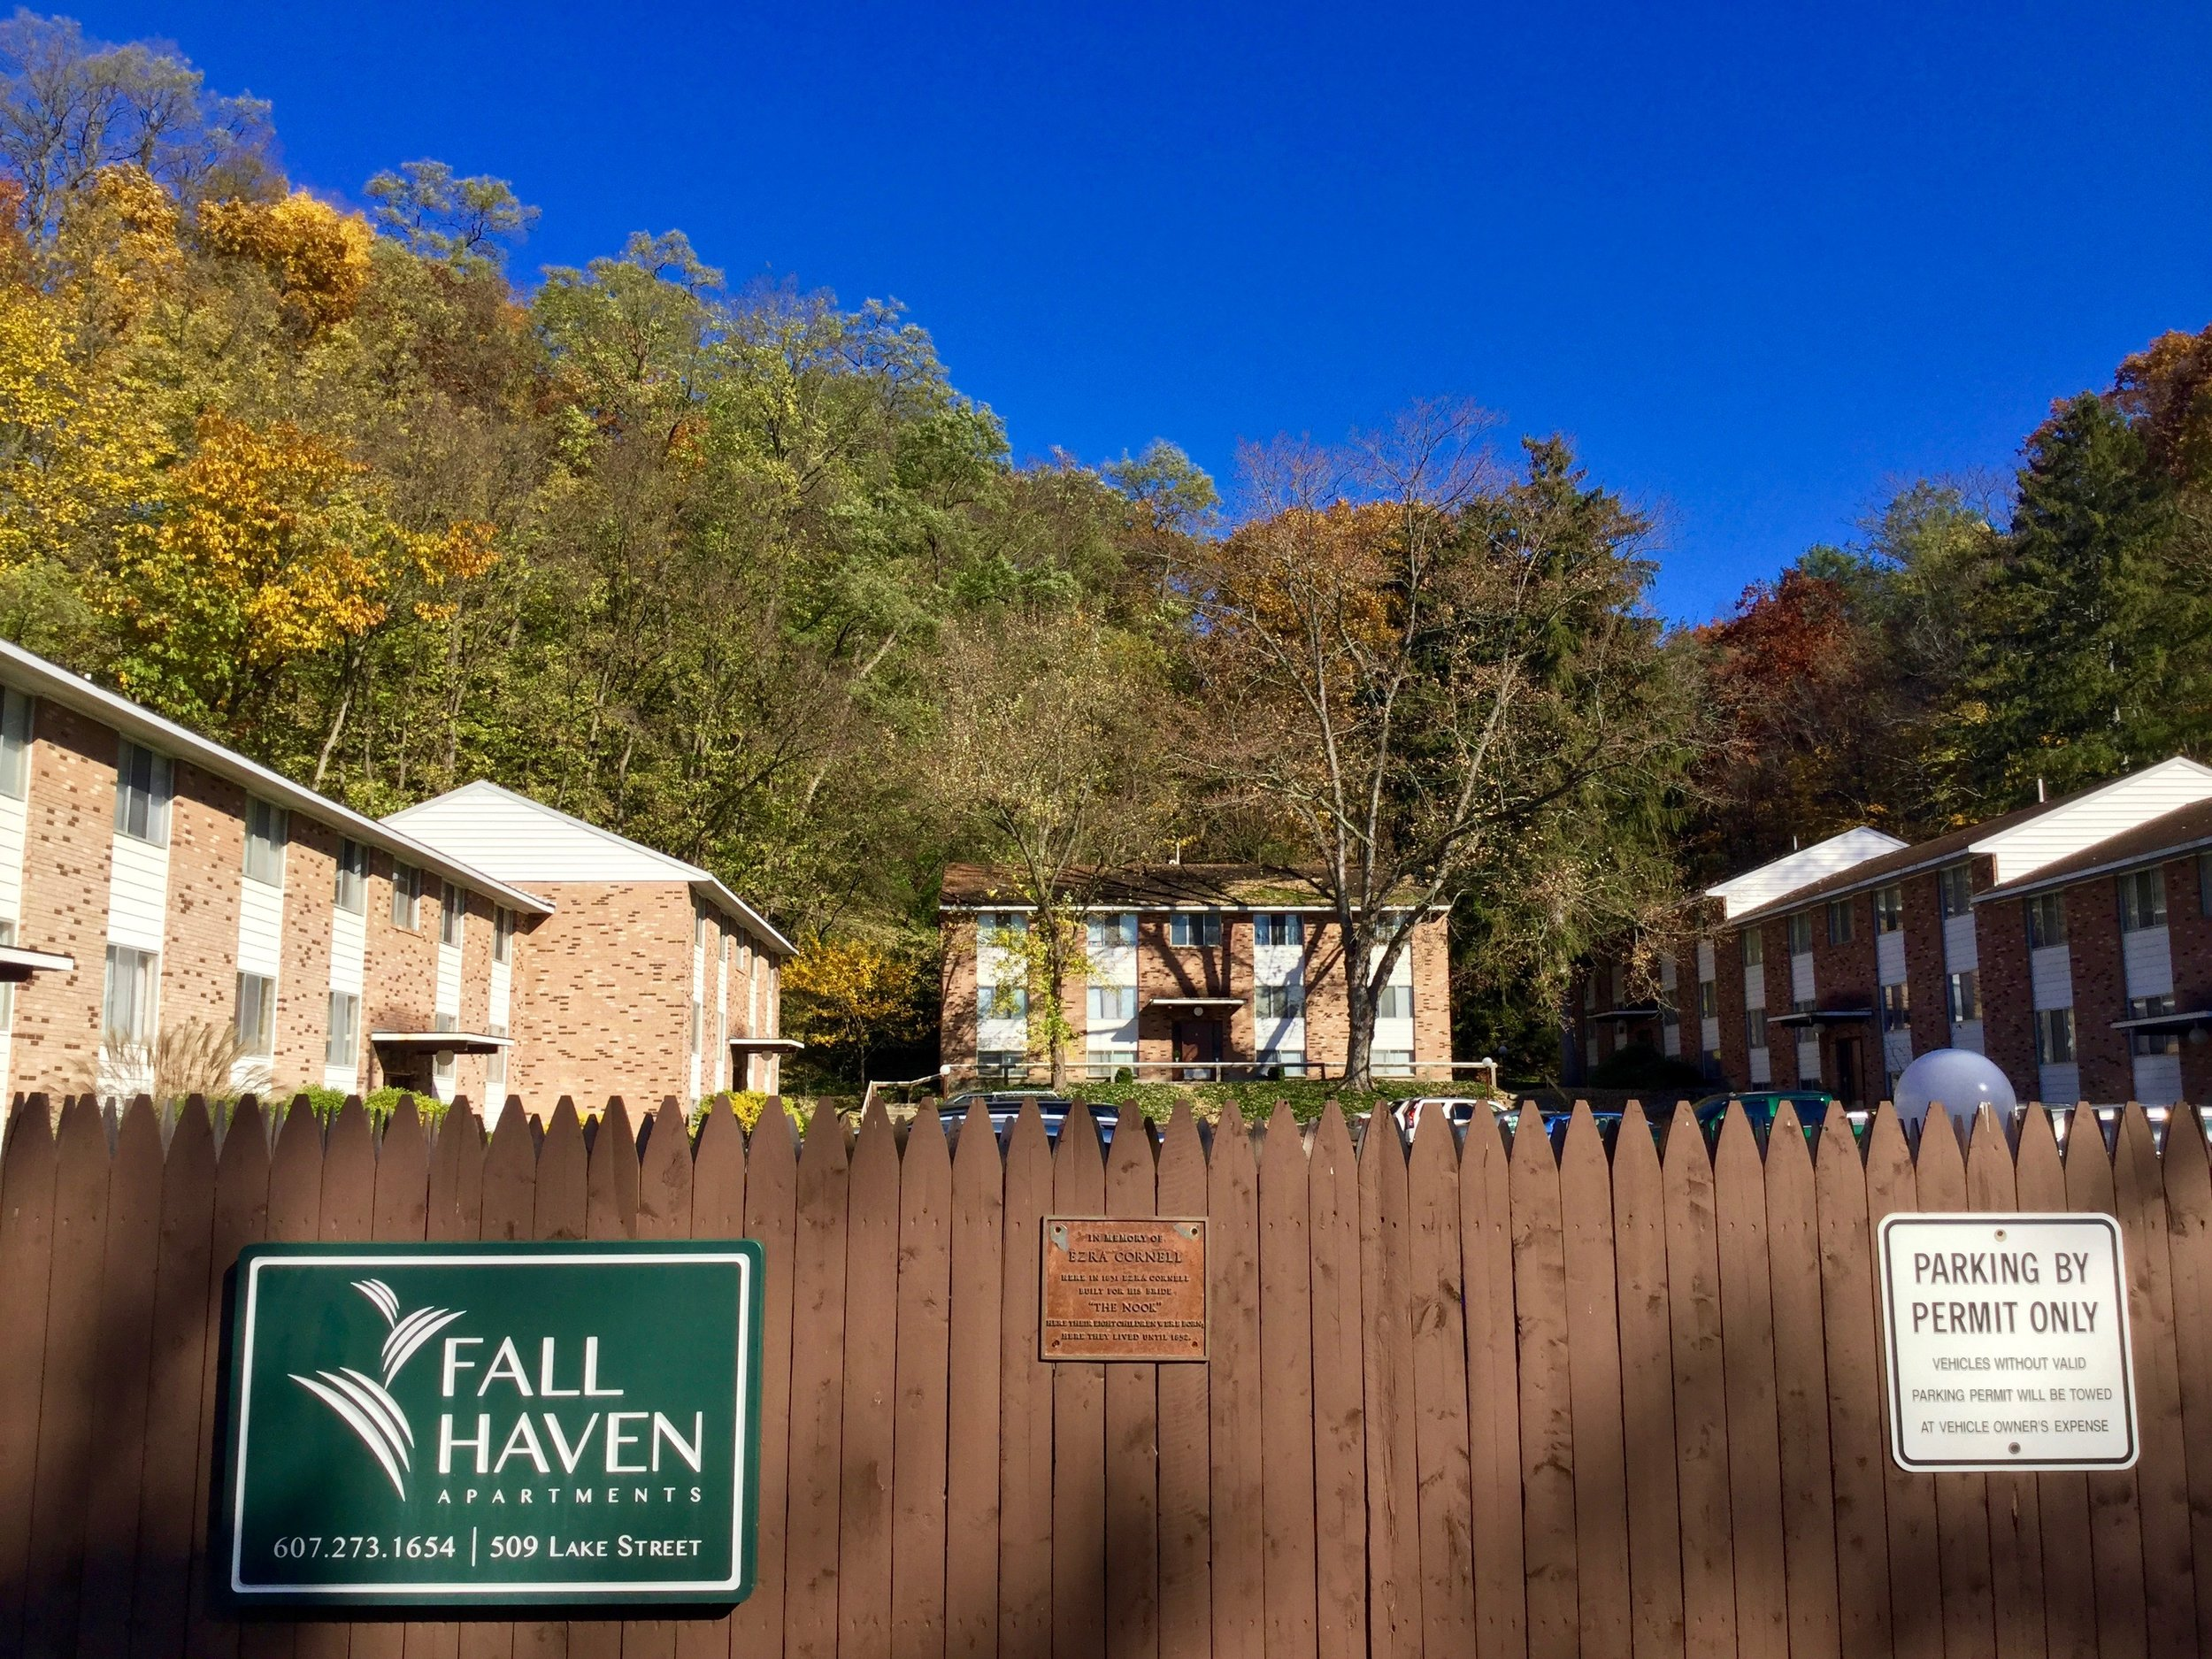 Fall Haven Apartments.jpg